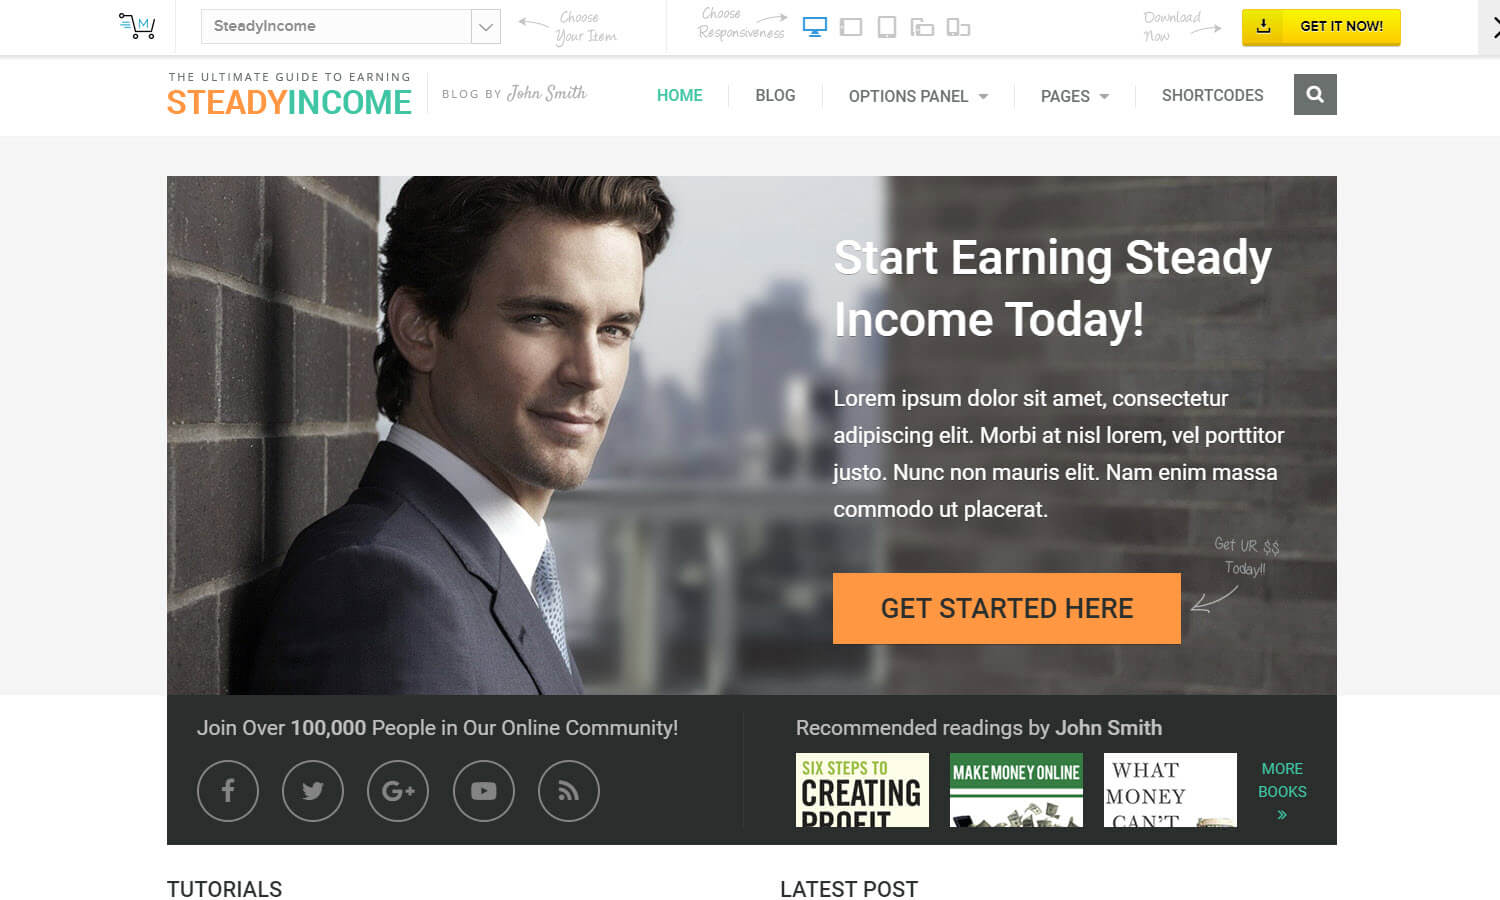 SteadyIncome screenshot